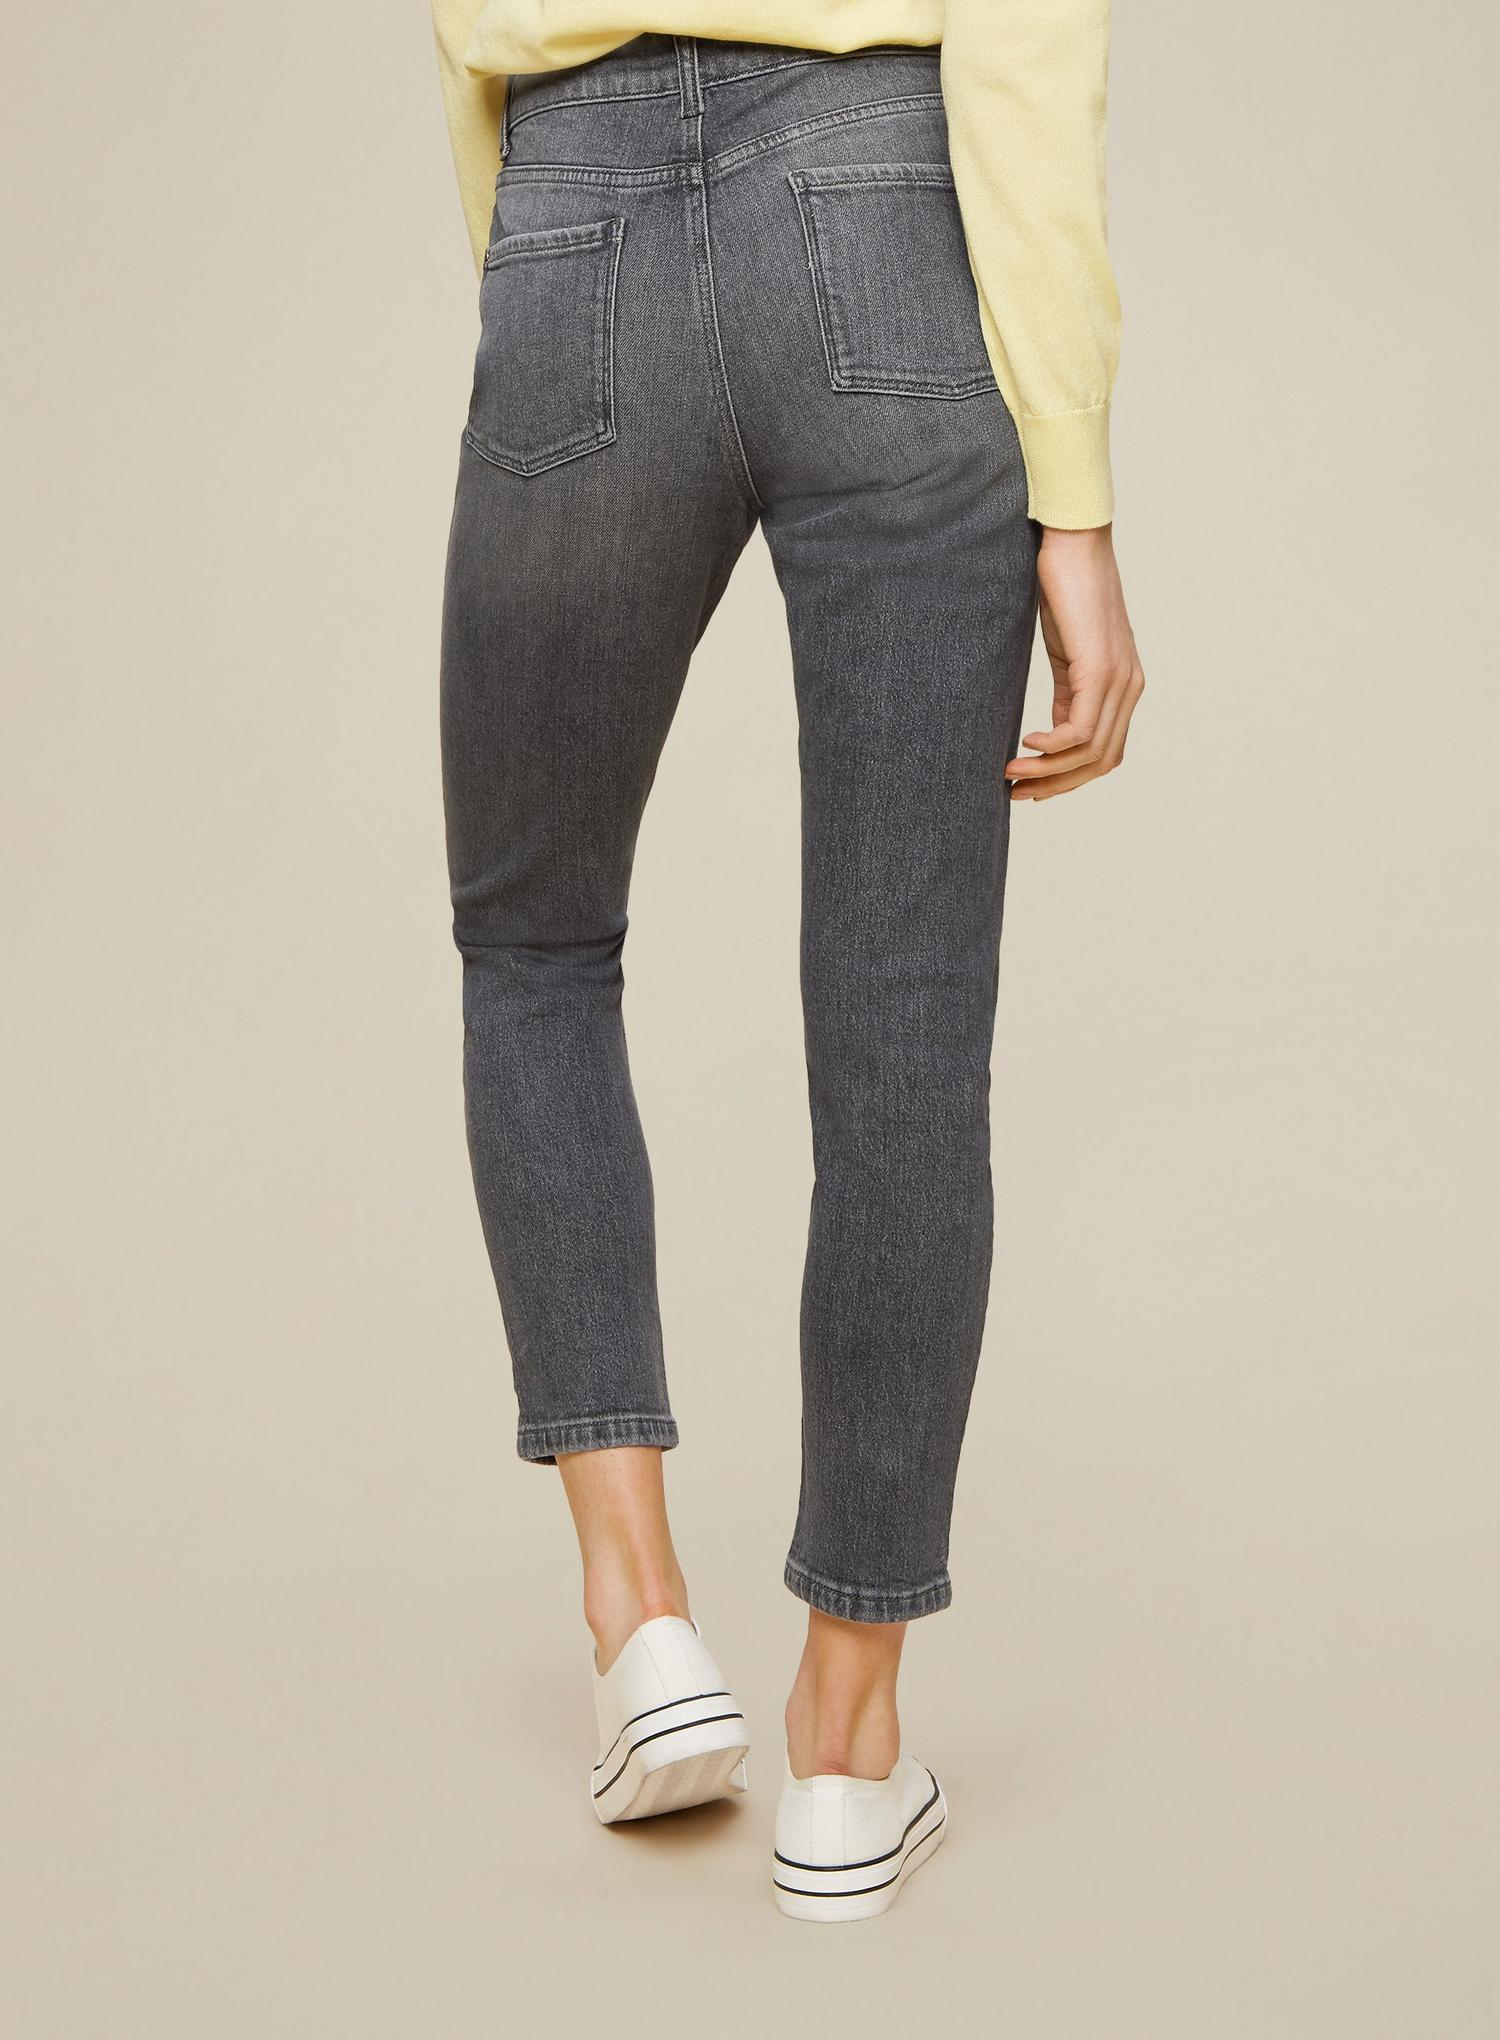 131 Grey Regular Mom Jeans With Organic Cotton image number 4